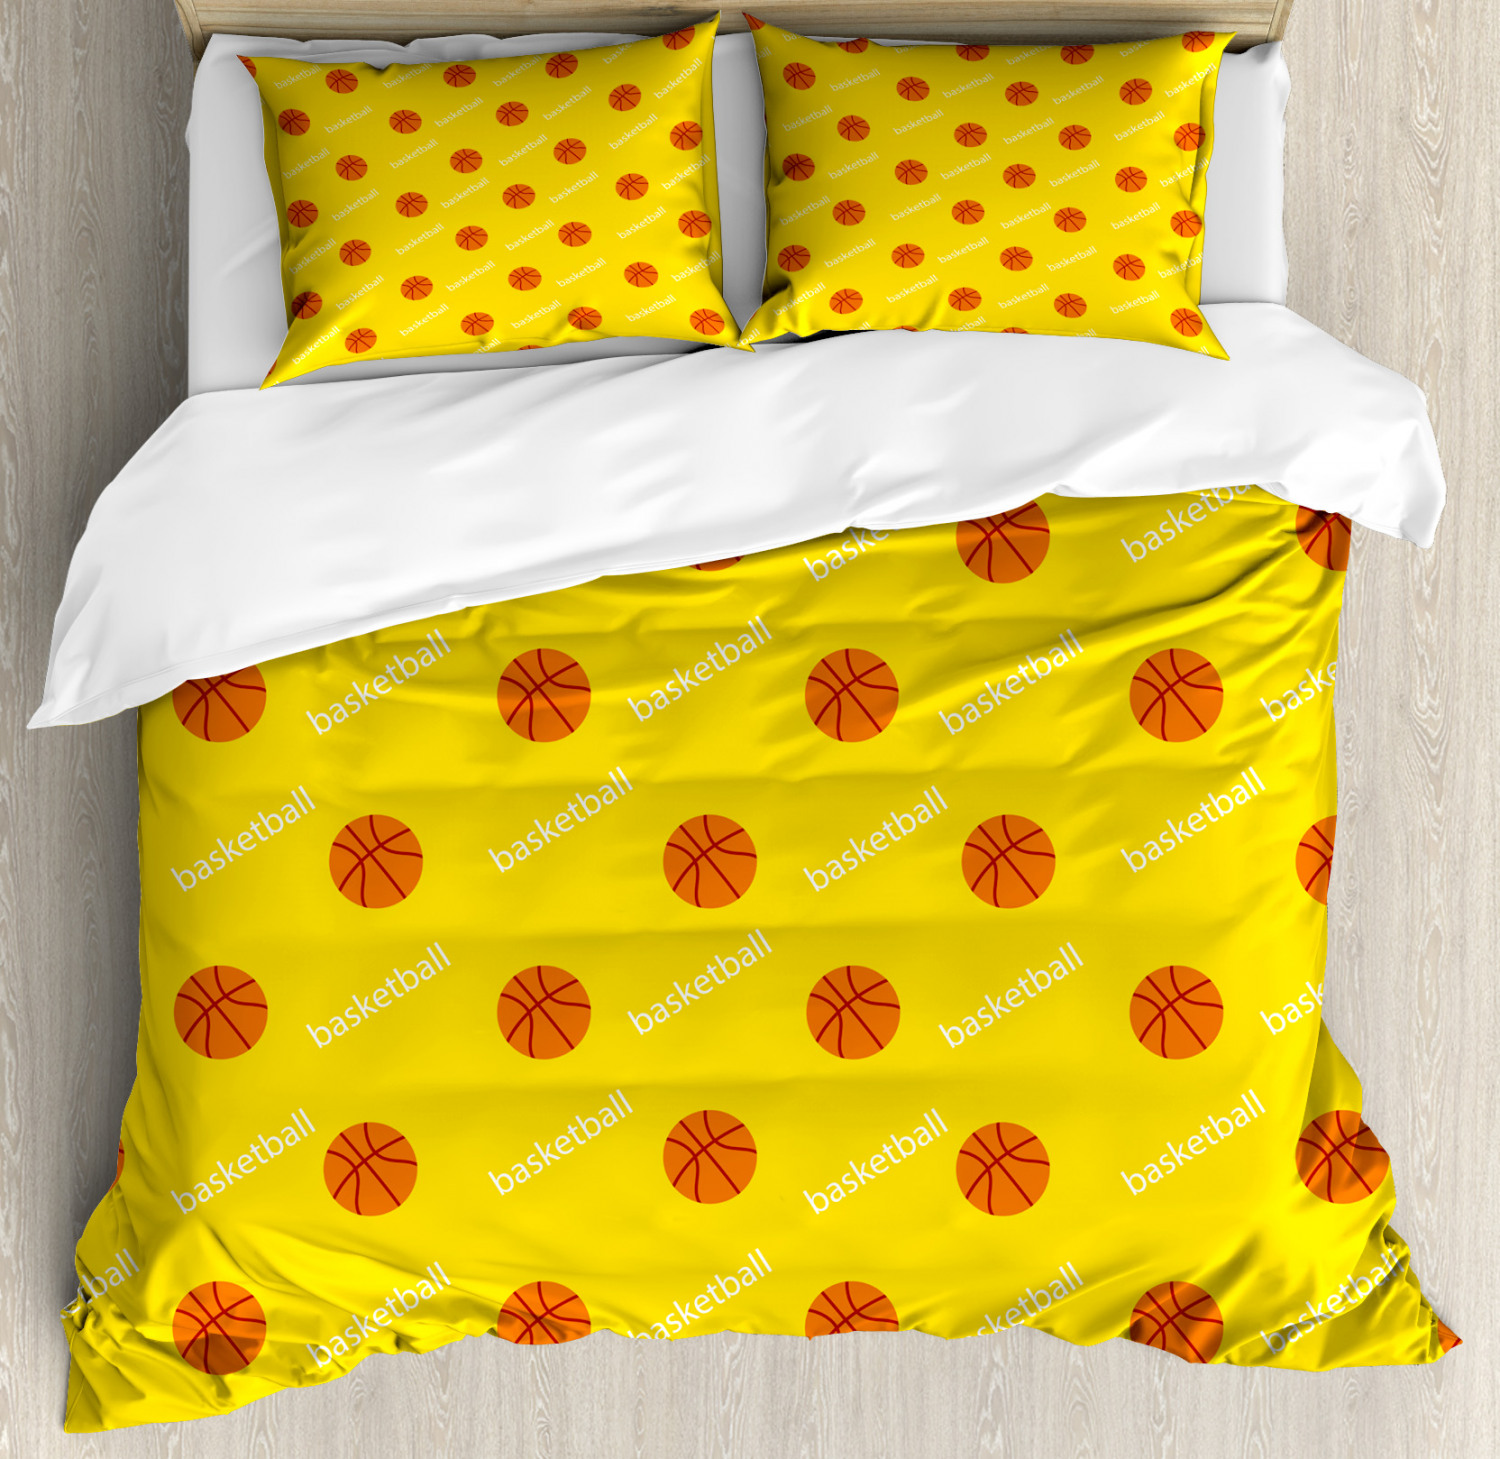 Pottery Barn Hanna Quilt Set Marigold King 2 Euro Shams Wholecloth Yellow New Quilts Bedspreads Coverlets